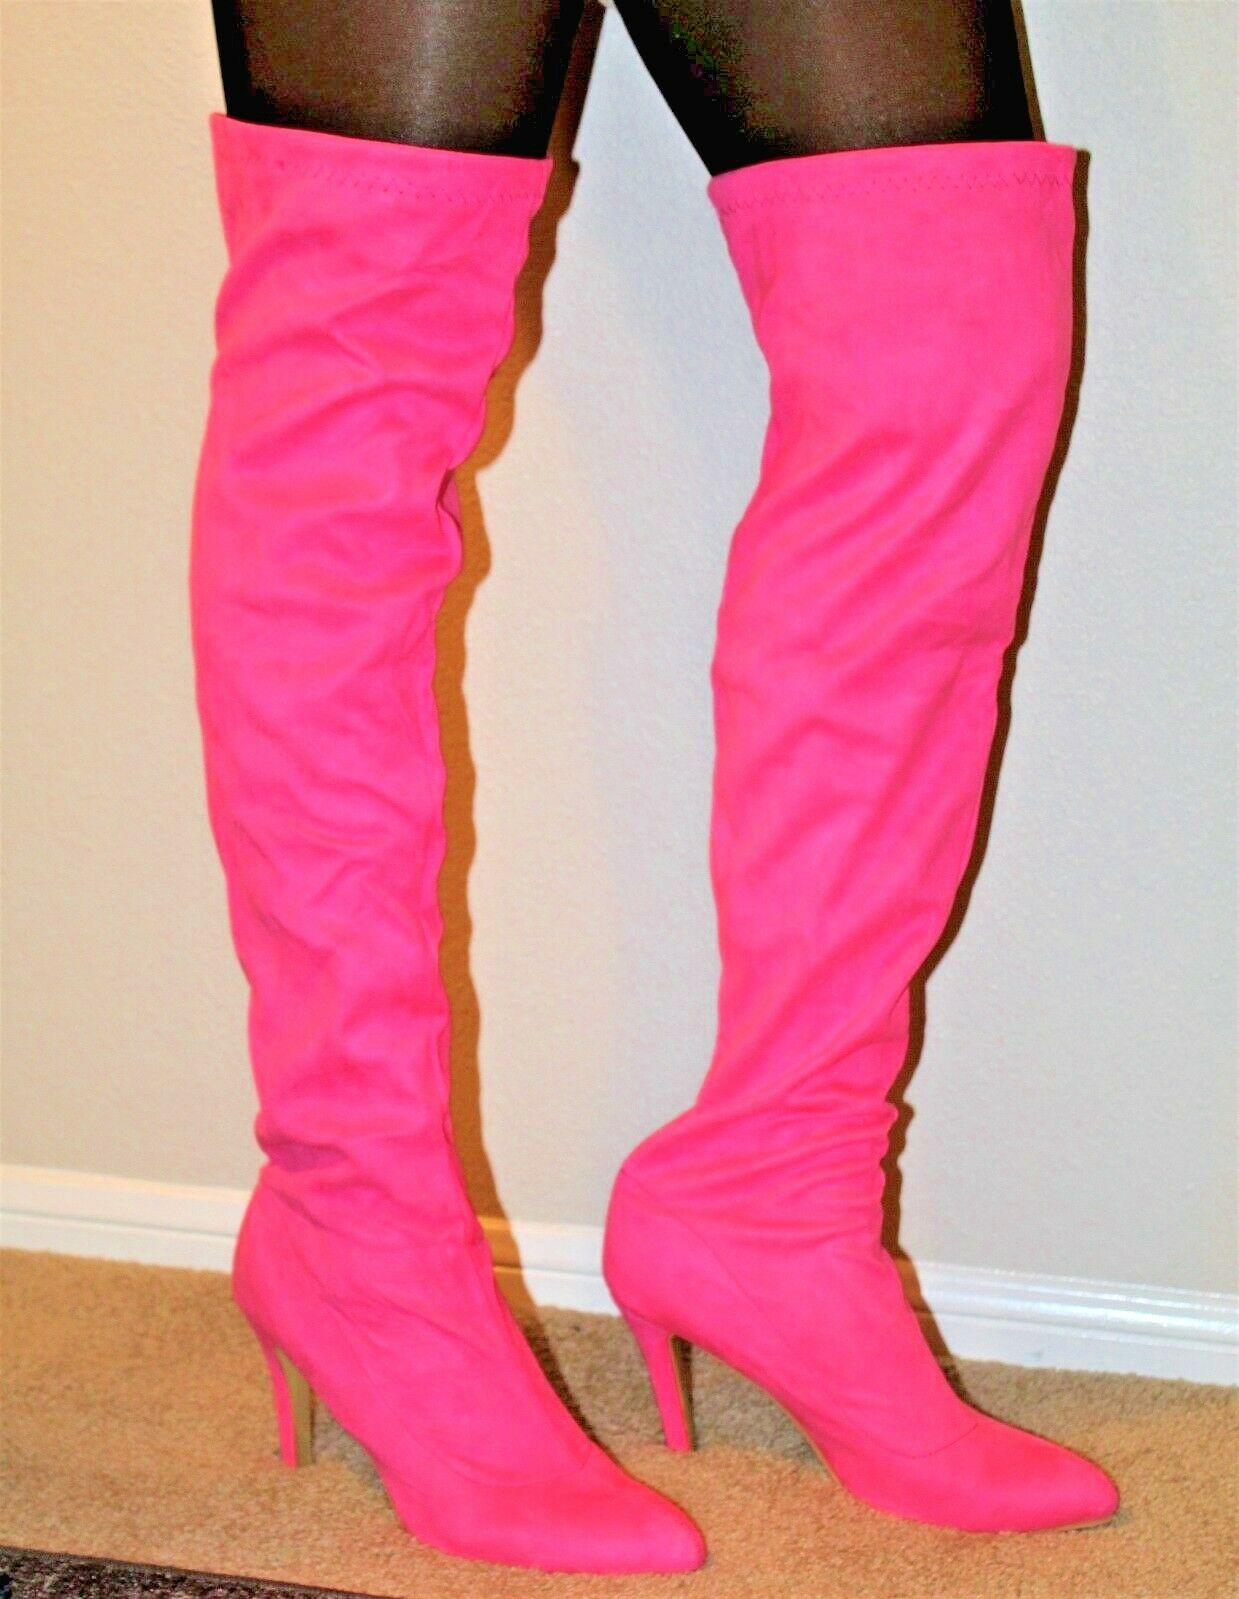 Pink, Over-the-Knee, Faux Suede High High High Heel Boots, Size 13 (EU 44) 264a07